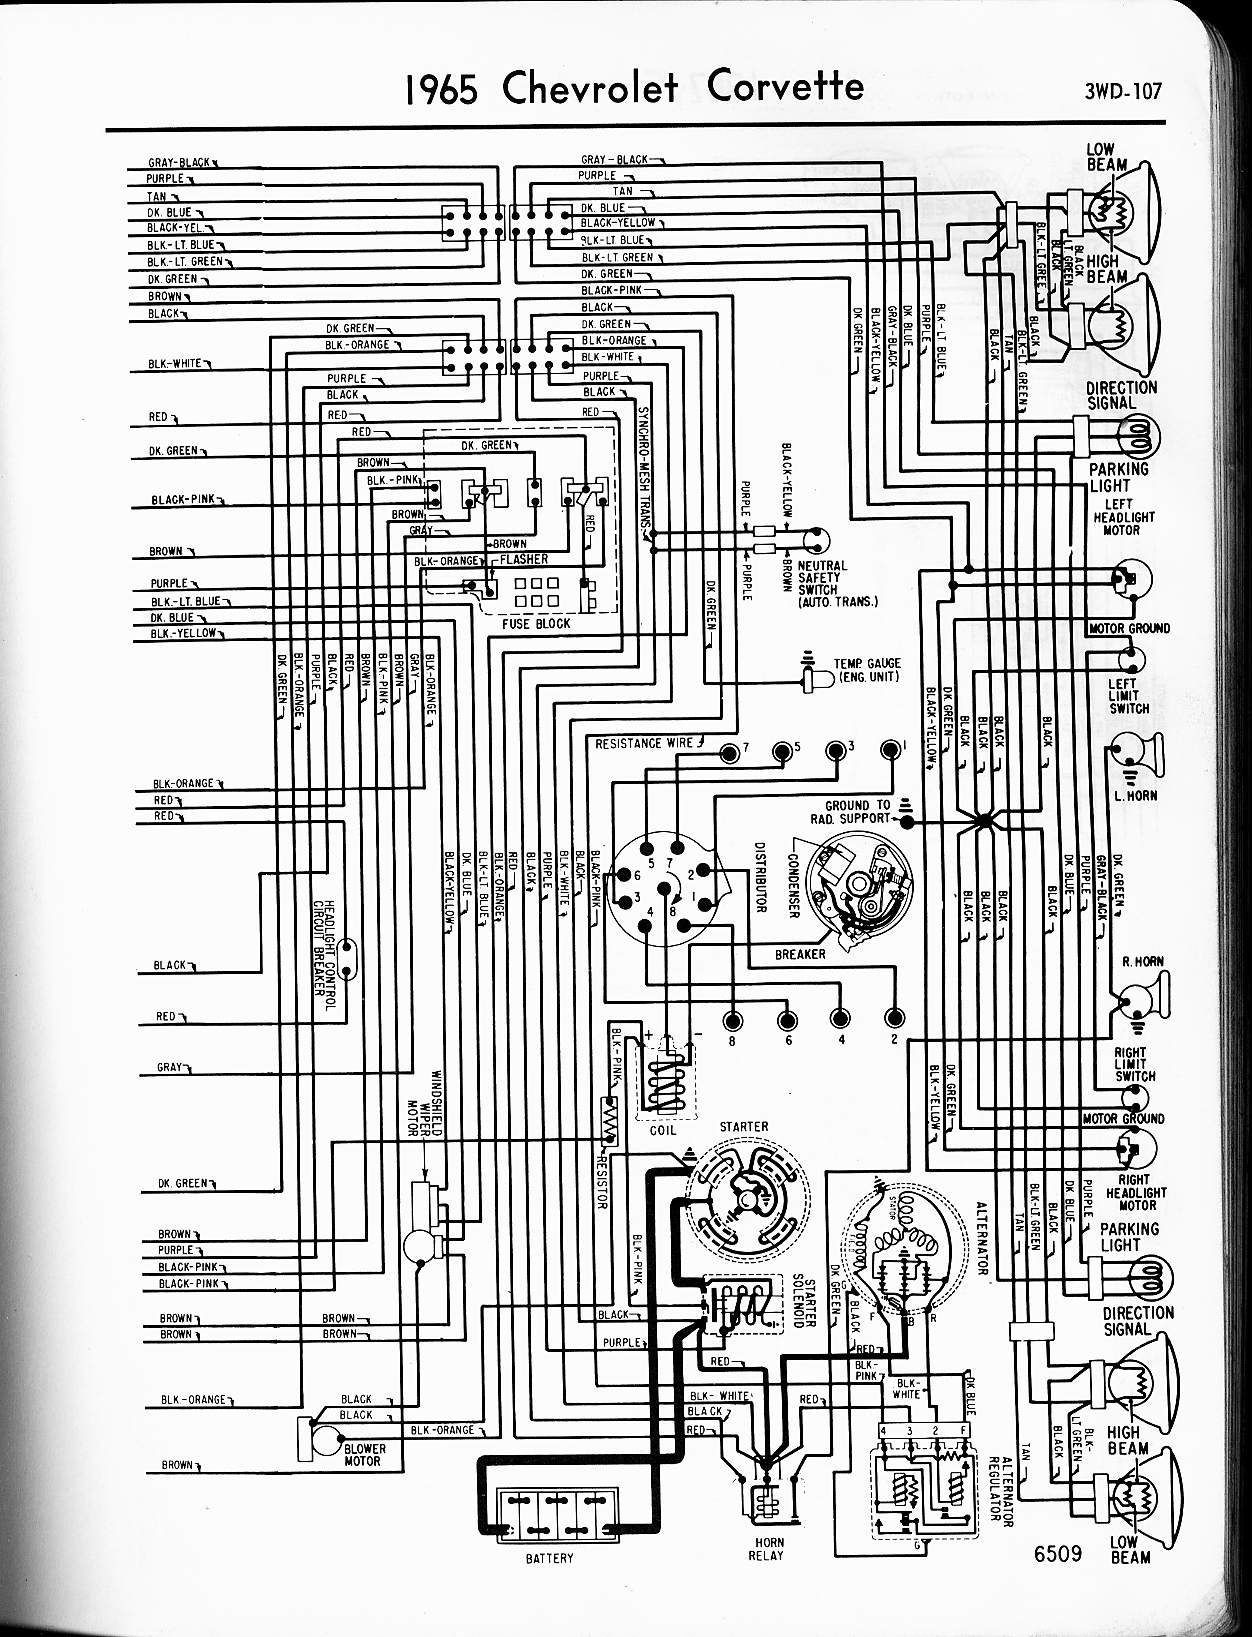 1963 corvette wire diagram wire data schema u2022 rh mobilcasino pw